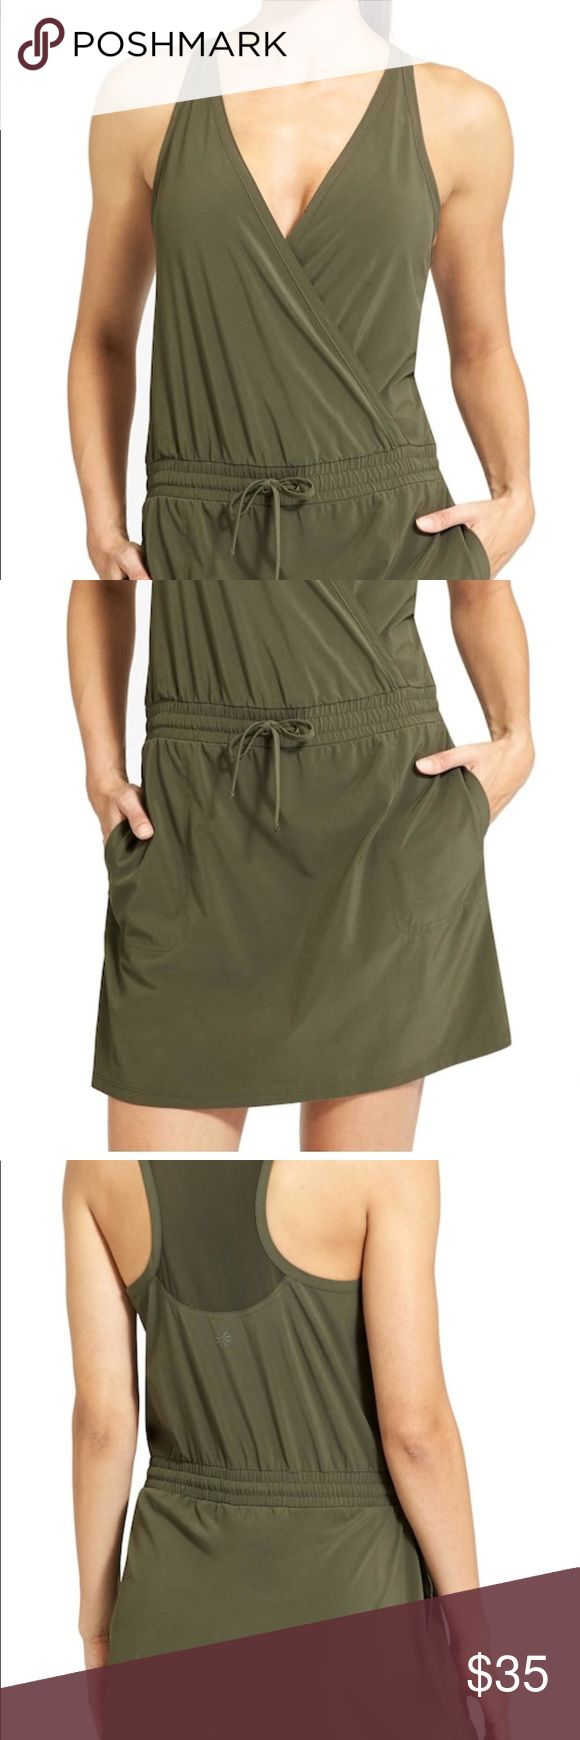 Athleta Forest Green Take A Hike Dress, 6 Awesome and comfortable forest green Athleta dress.  UPF 50+ featherweight stretch, front side pockets, adjustable elastic waist, built in shorts. Size 6. Excellent condition! Athleta Dresses